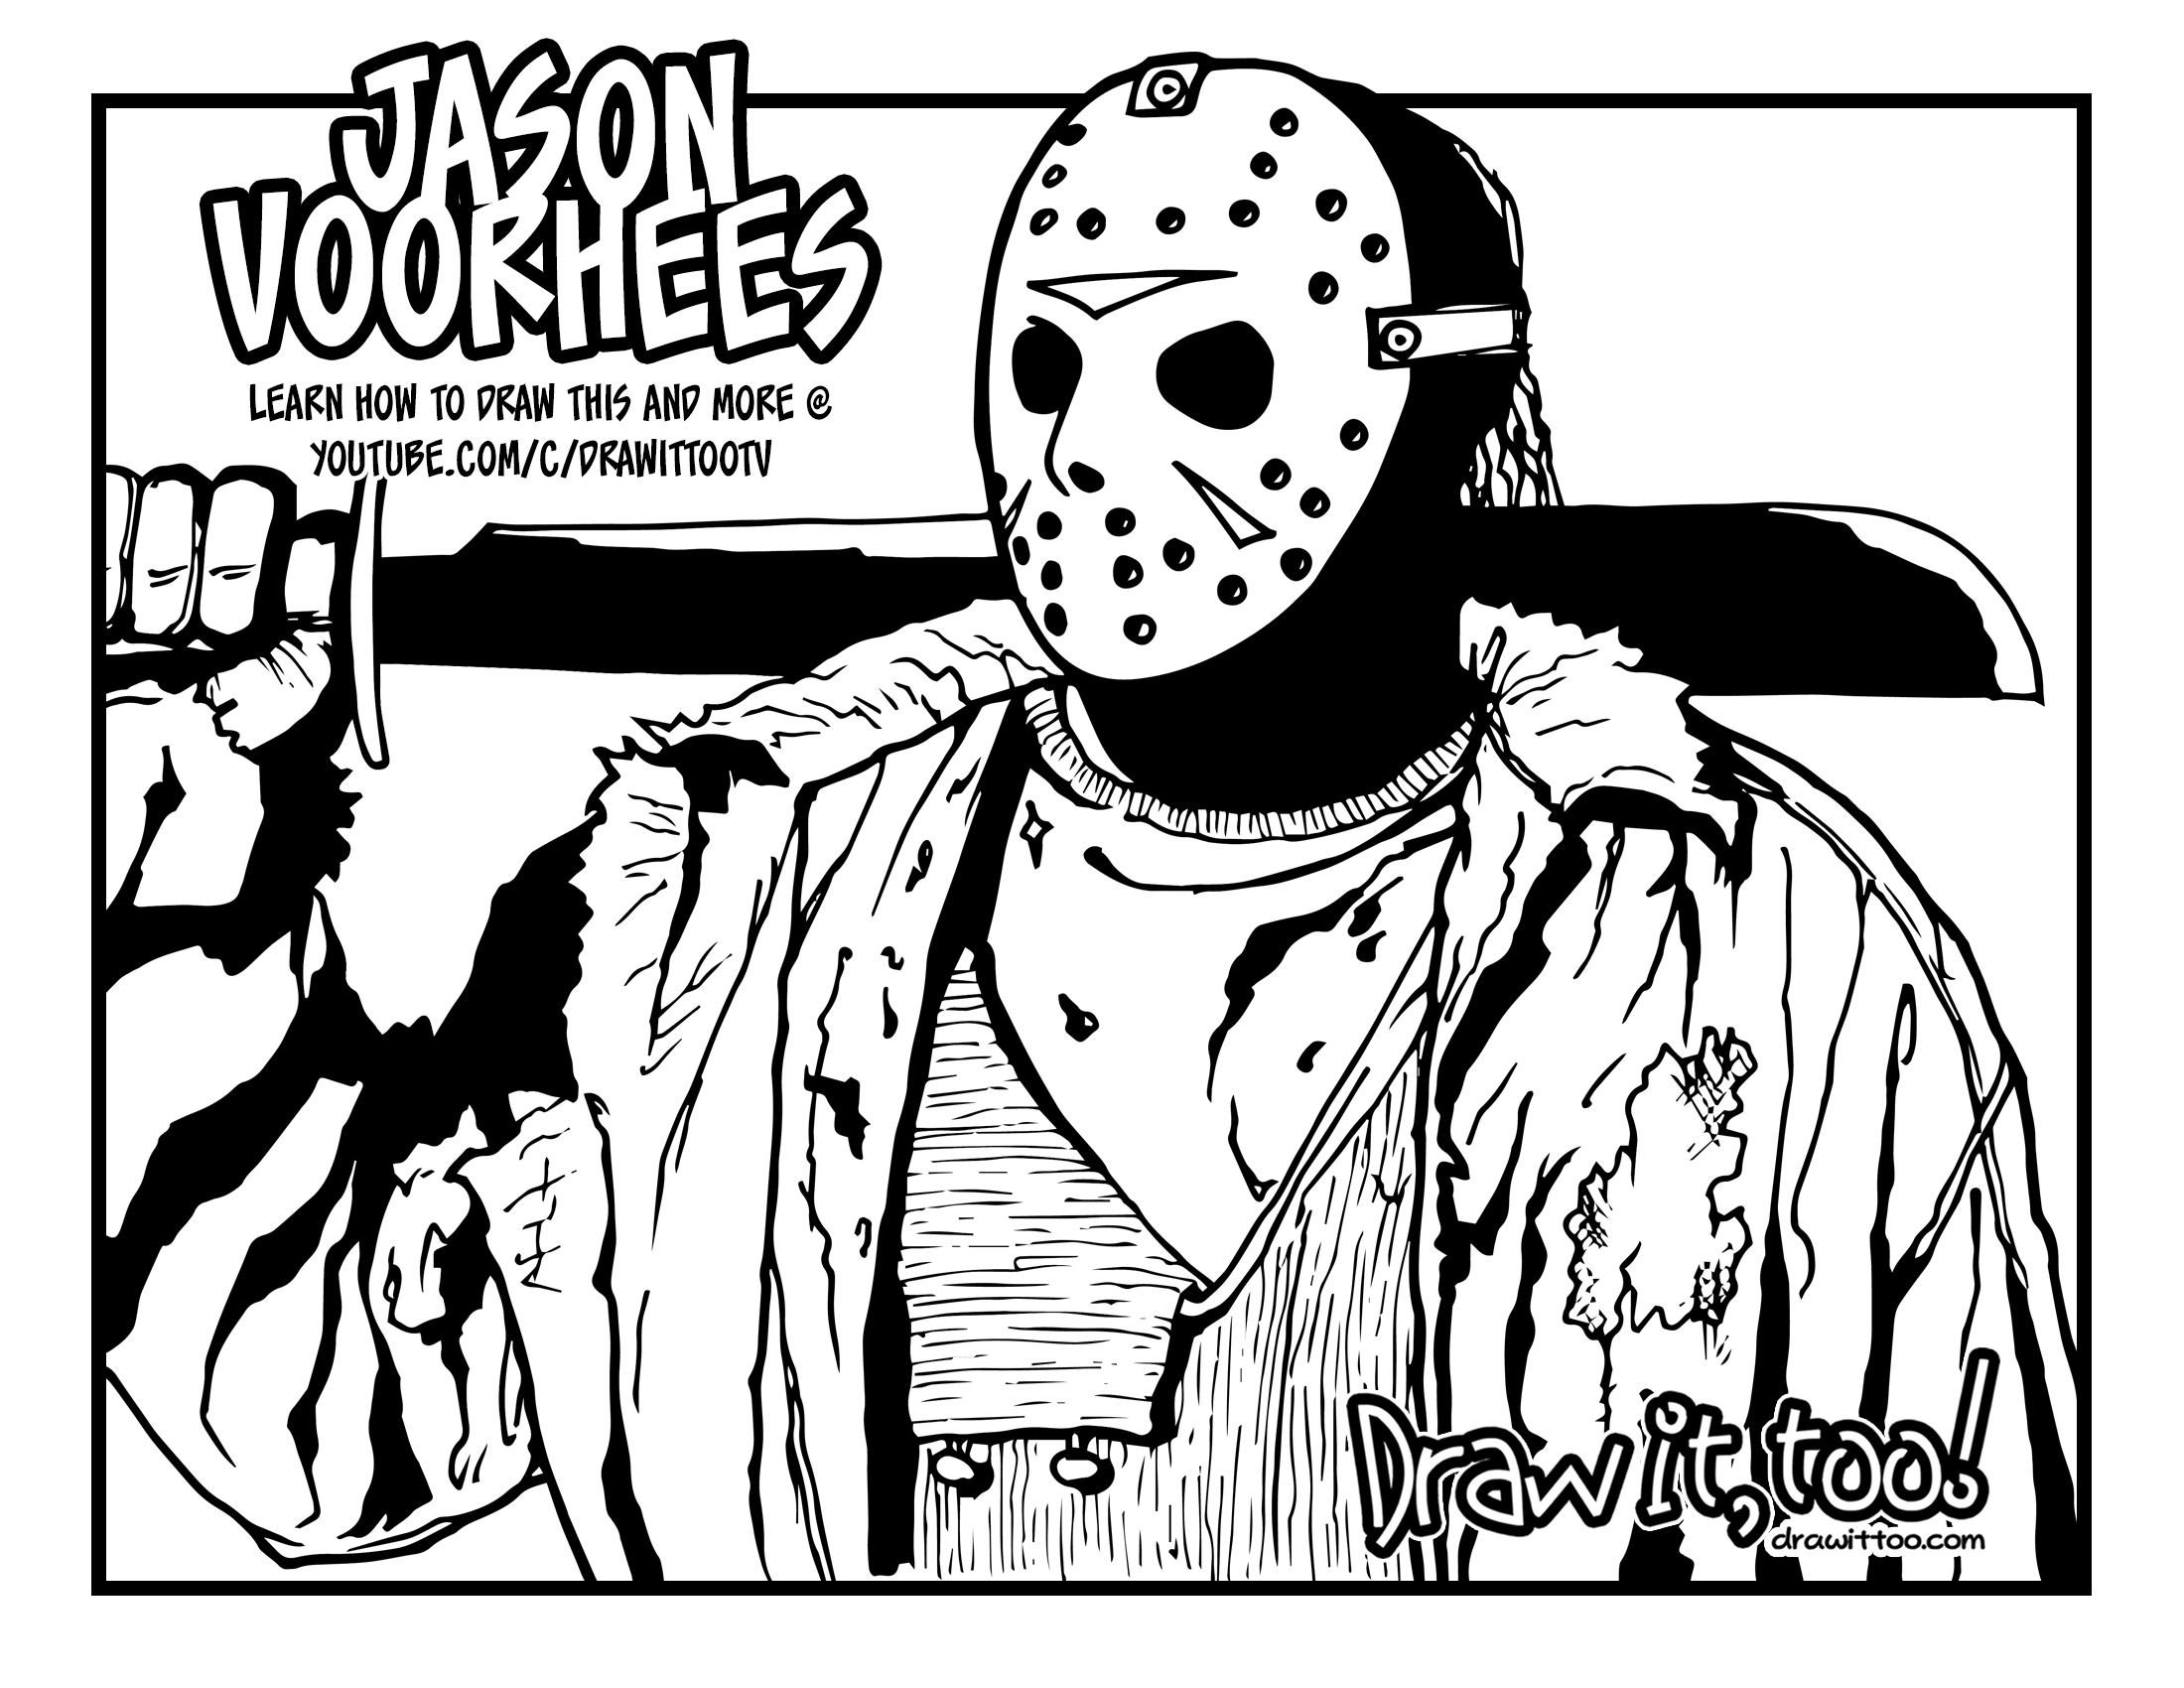 Welcome to Camp Crystal Lake Draw it Too